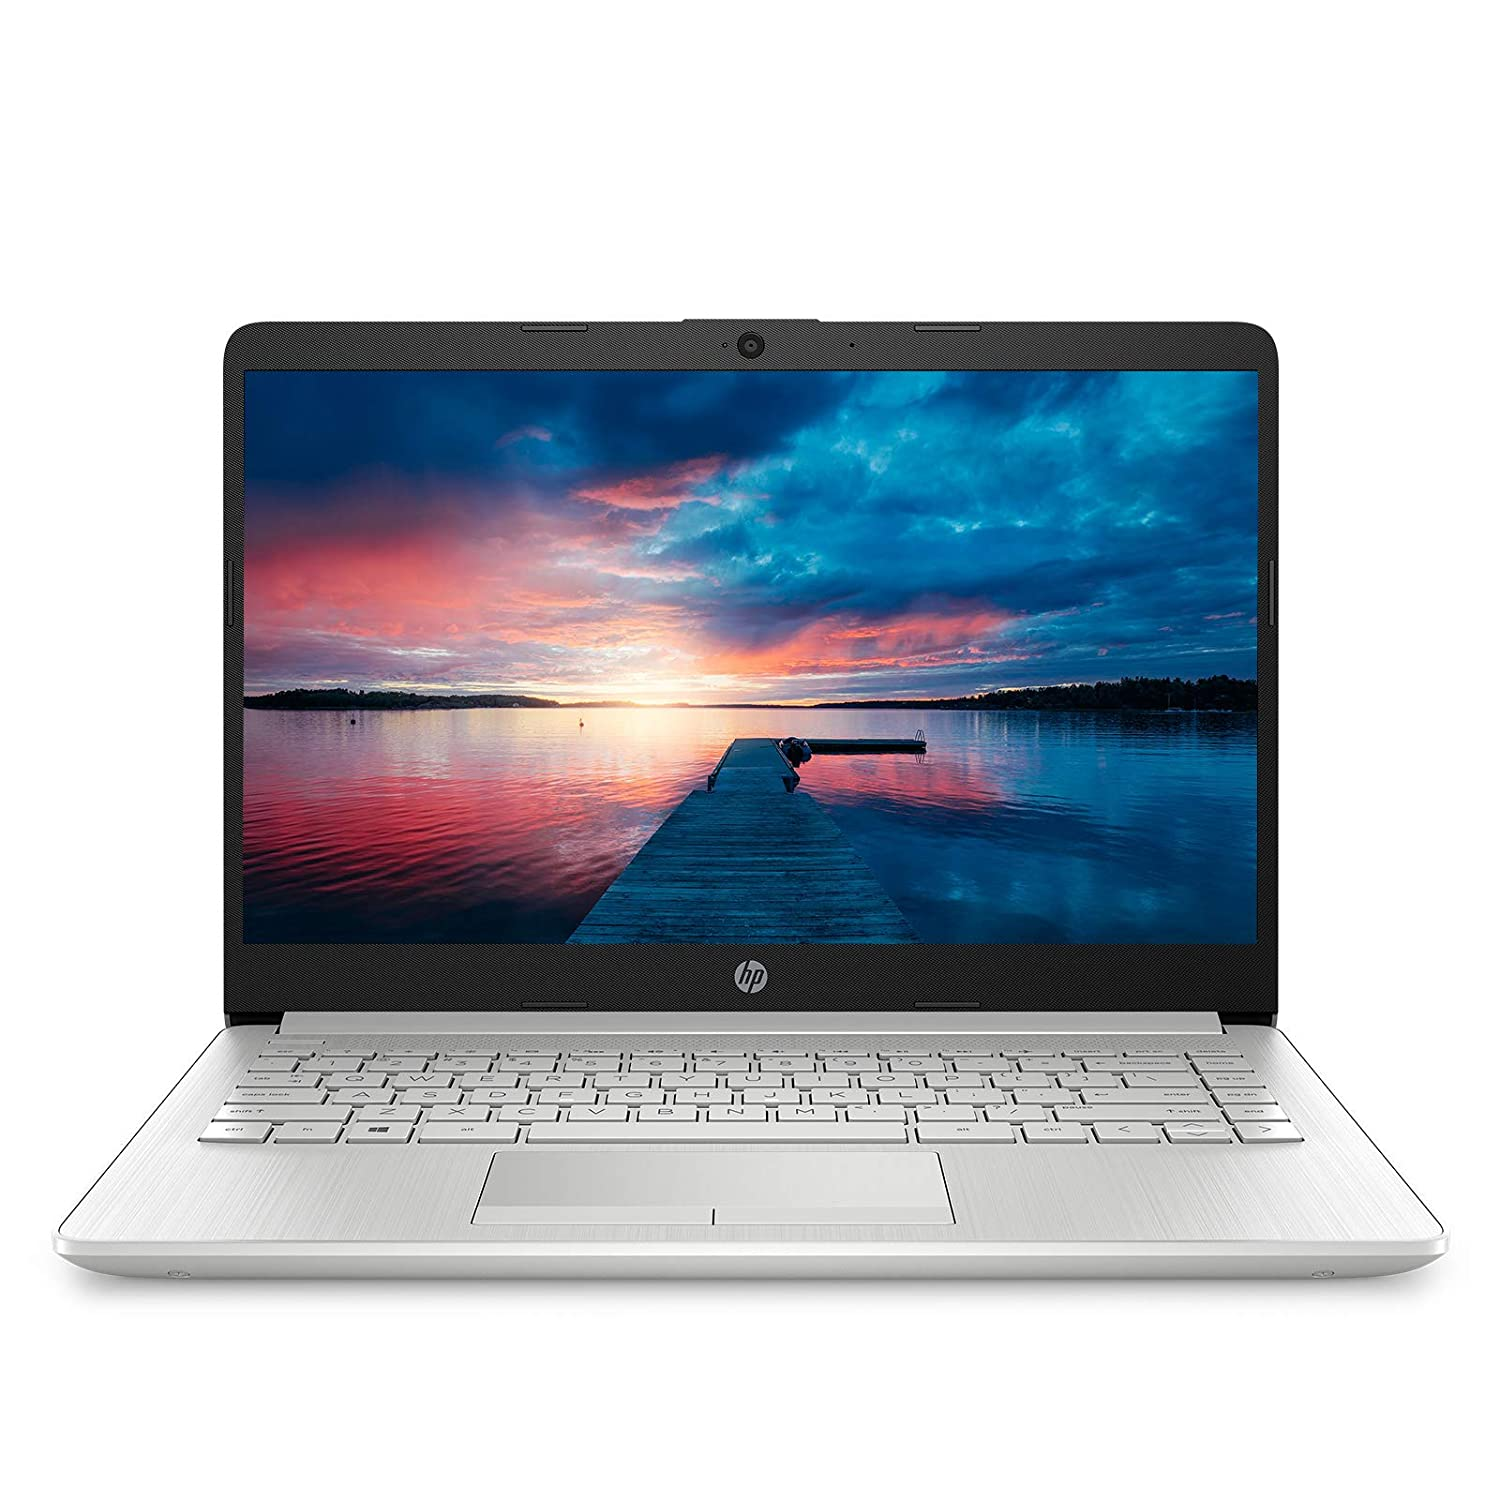 HP 14 10th Gen Intel Core i3 Processor 14-inch FHD Laptop with Built-in 4G LTE